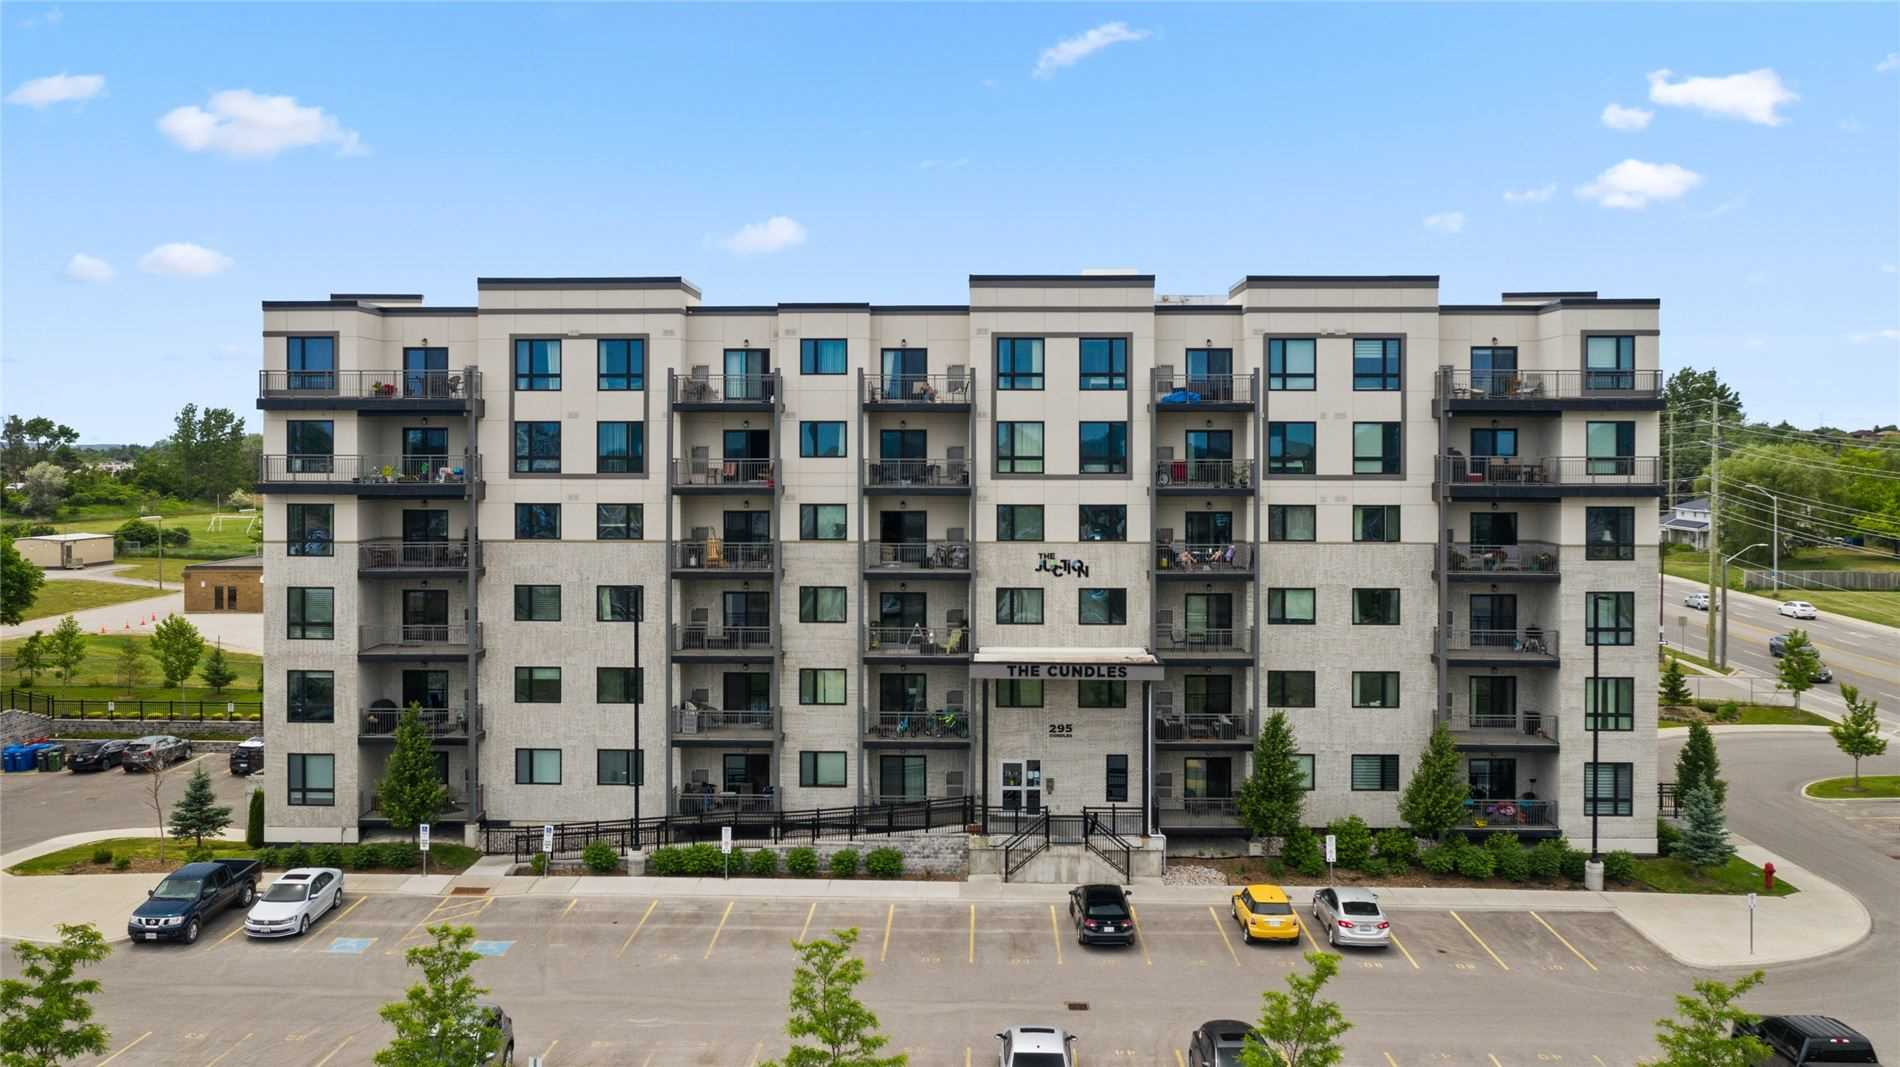 295 Cundles Rd, Barrie, Ontario L4M 0K8, 2 Bedrooms Bedrooms, ,2 BathroomsBathrooms,Condo Apt,For Sale,Cundles,S5273053